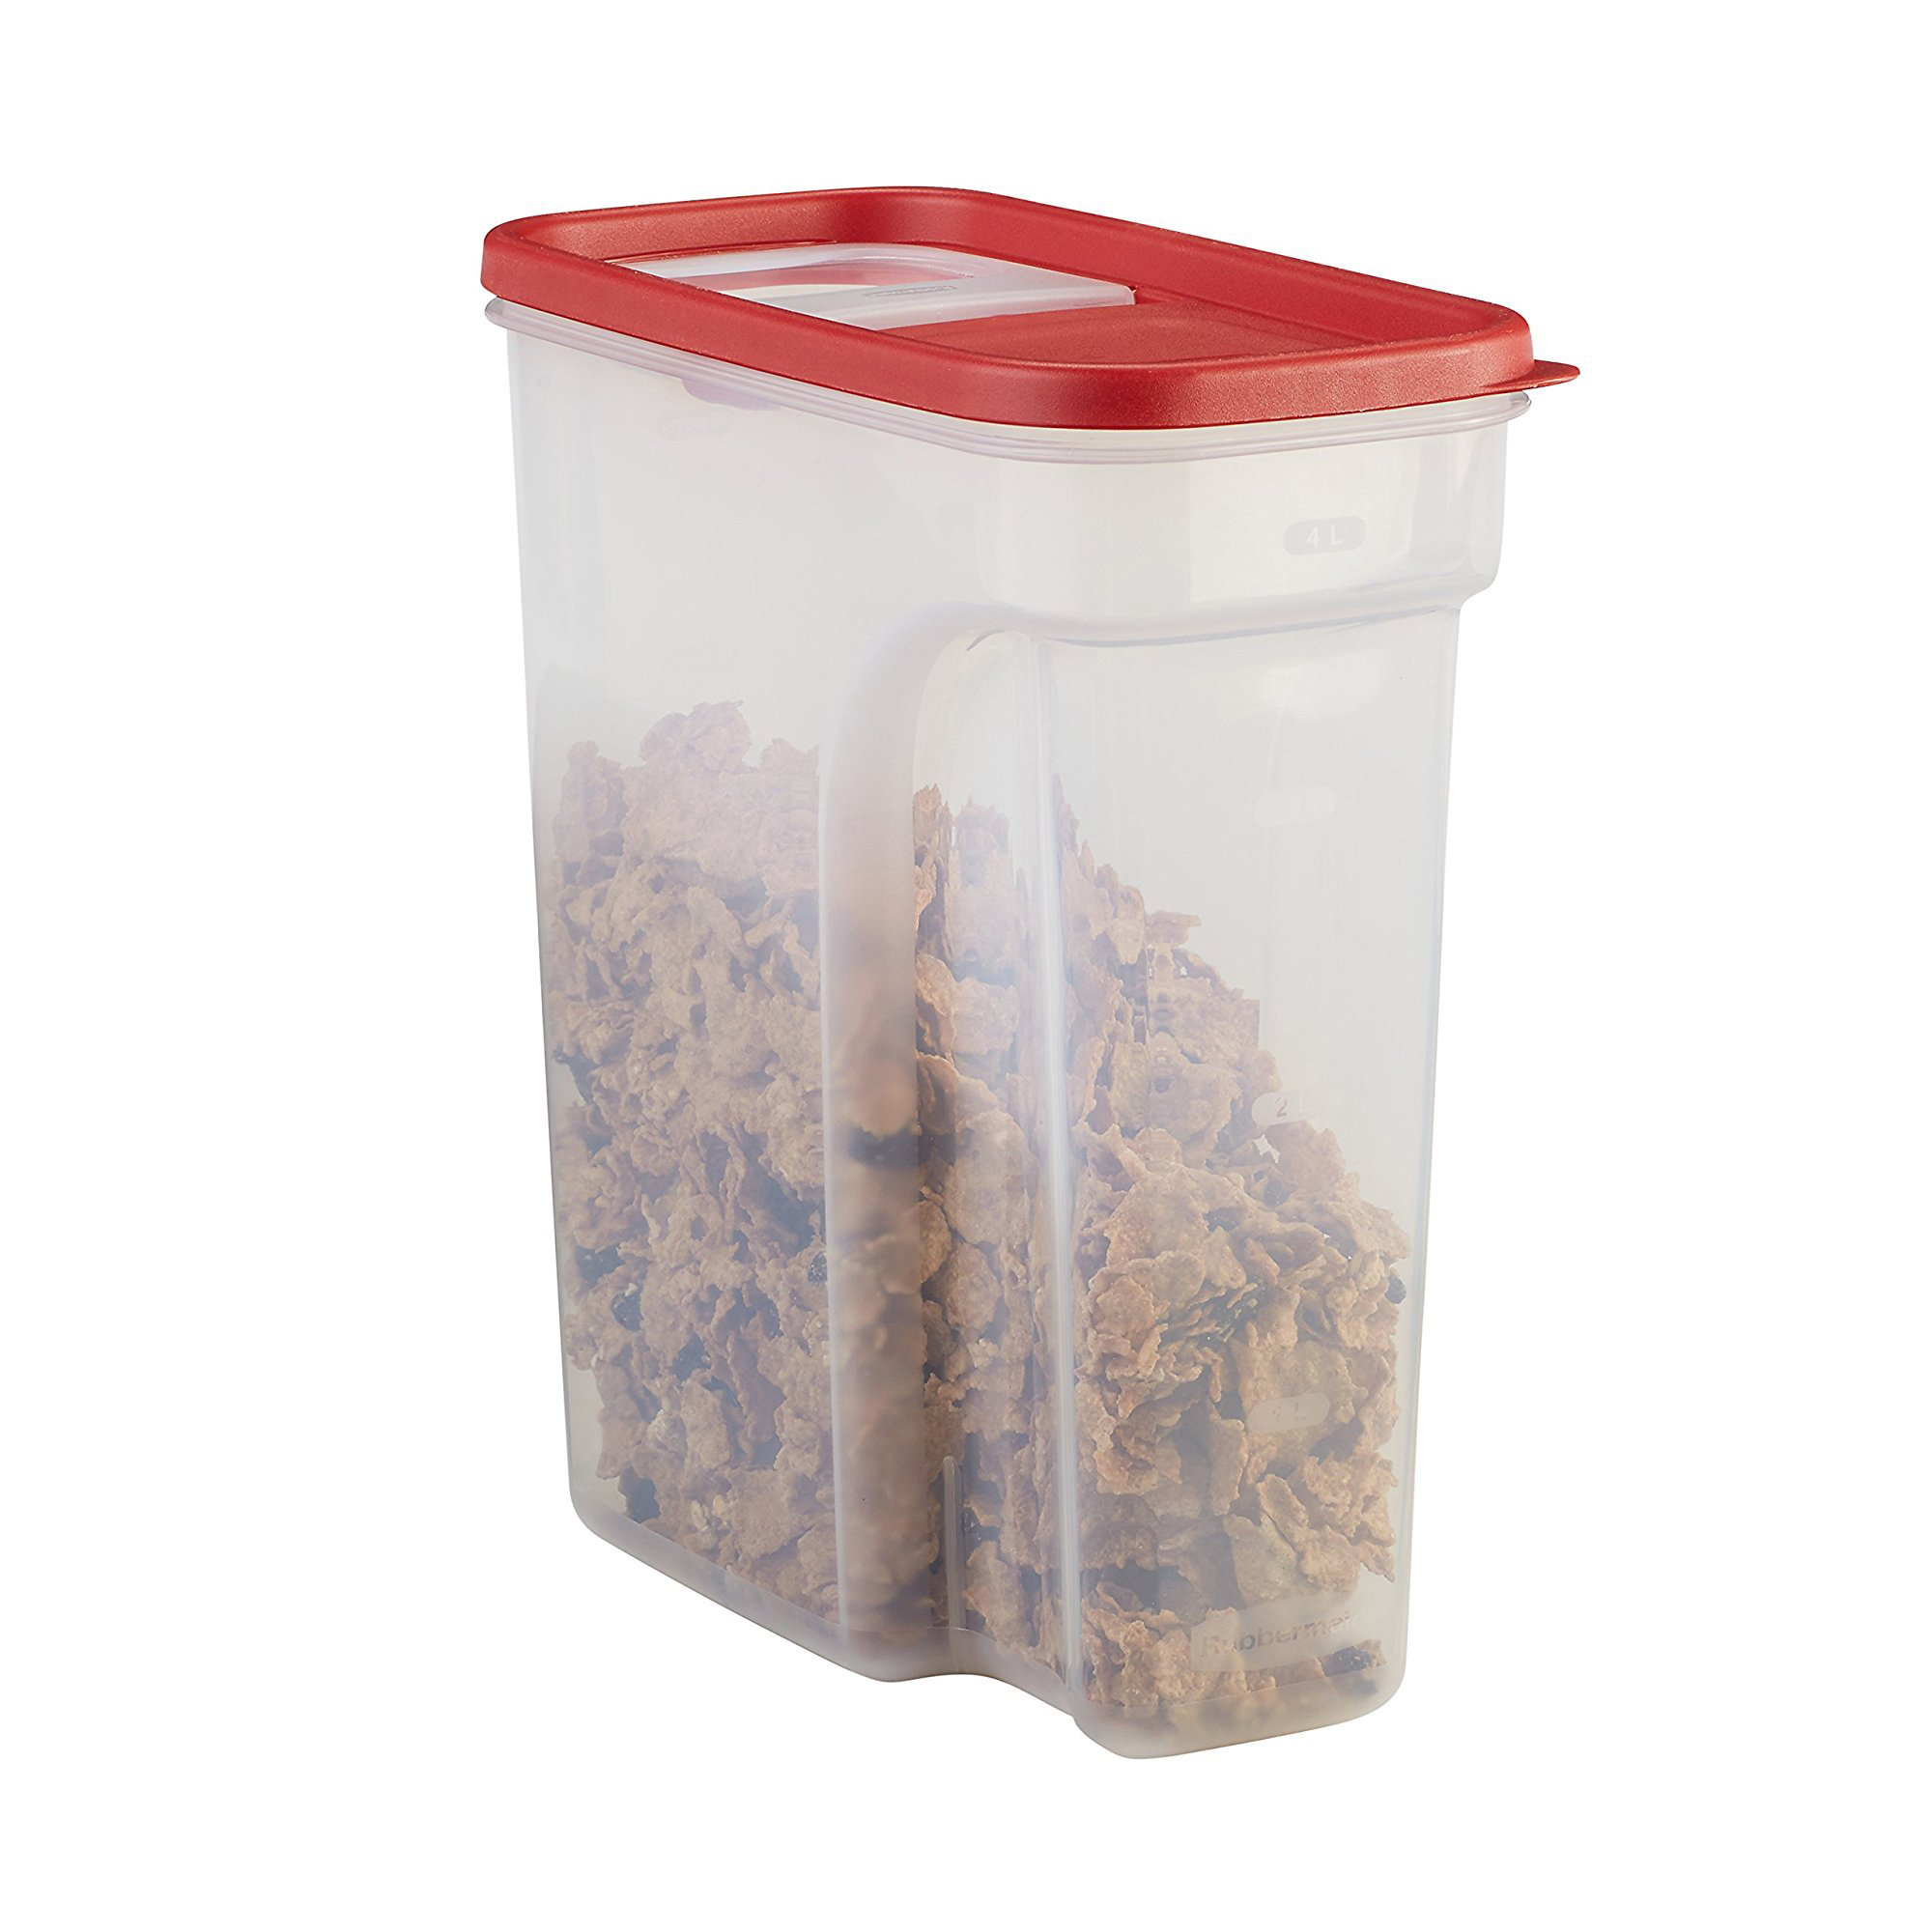 Genial Rubbermaid Flip Top Cereal And Food Storage Container, 18 Cup/4.26 Liter,